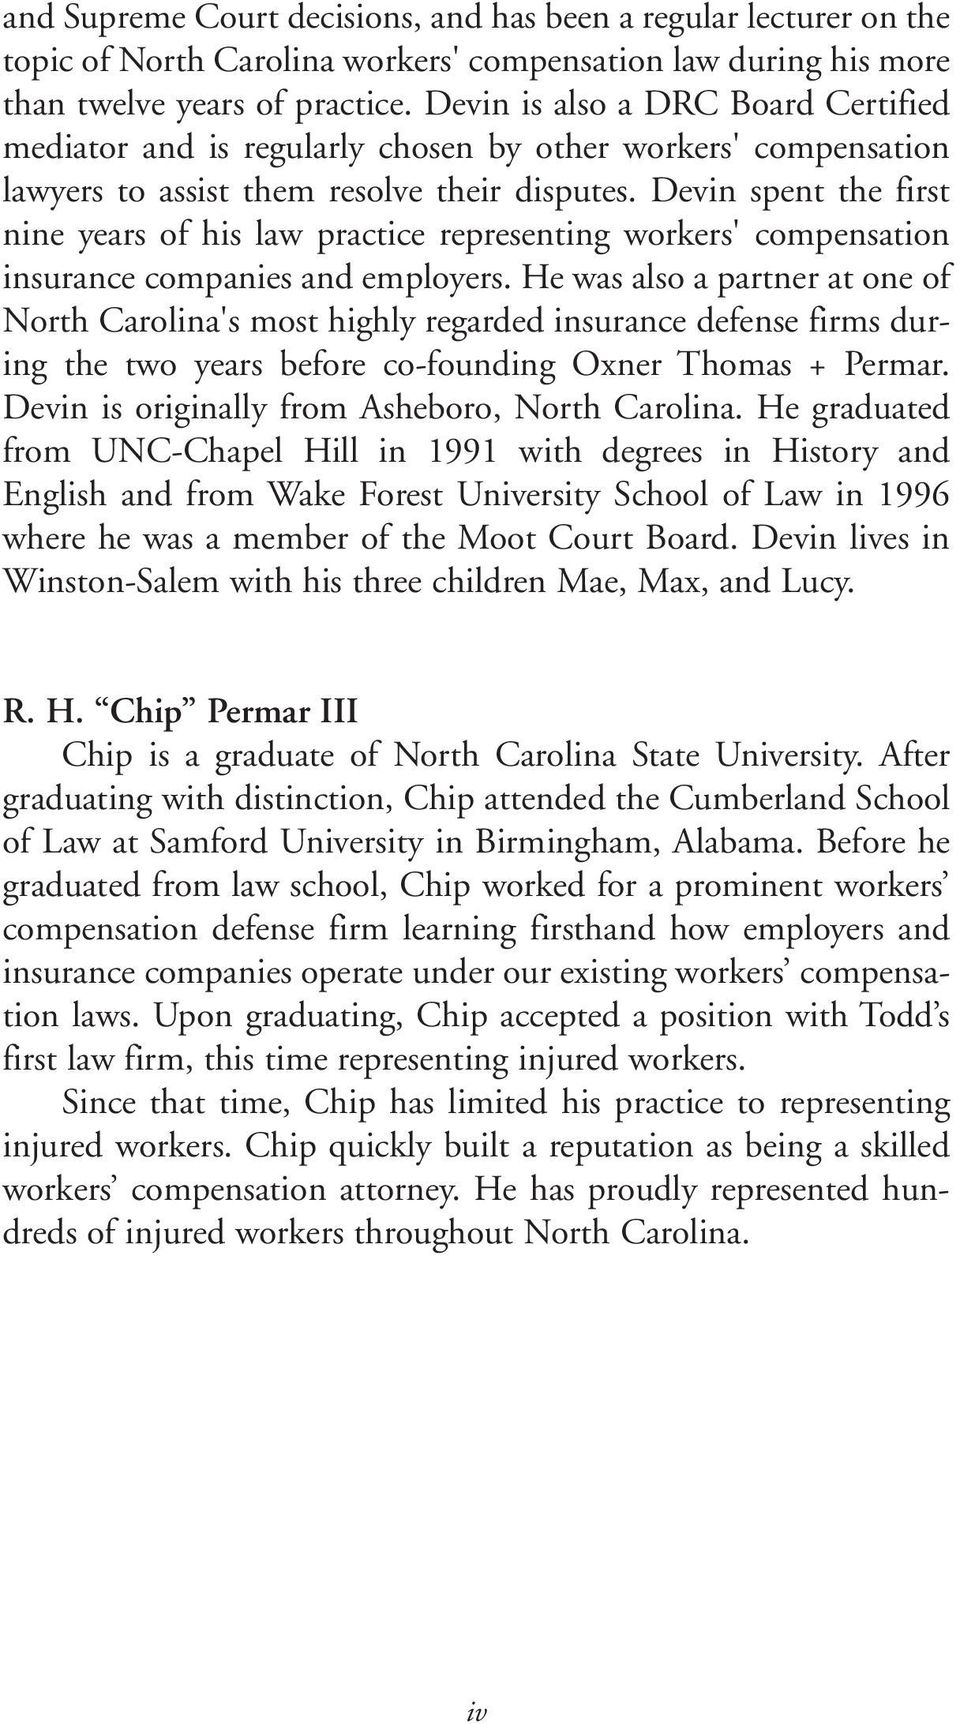 Devin spent the first nine years of his law practice representing workers' compensation insurance companies and employers.